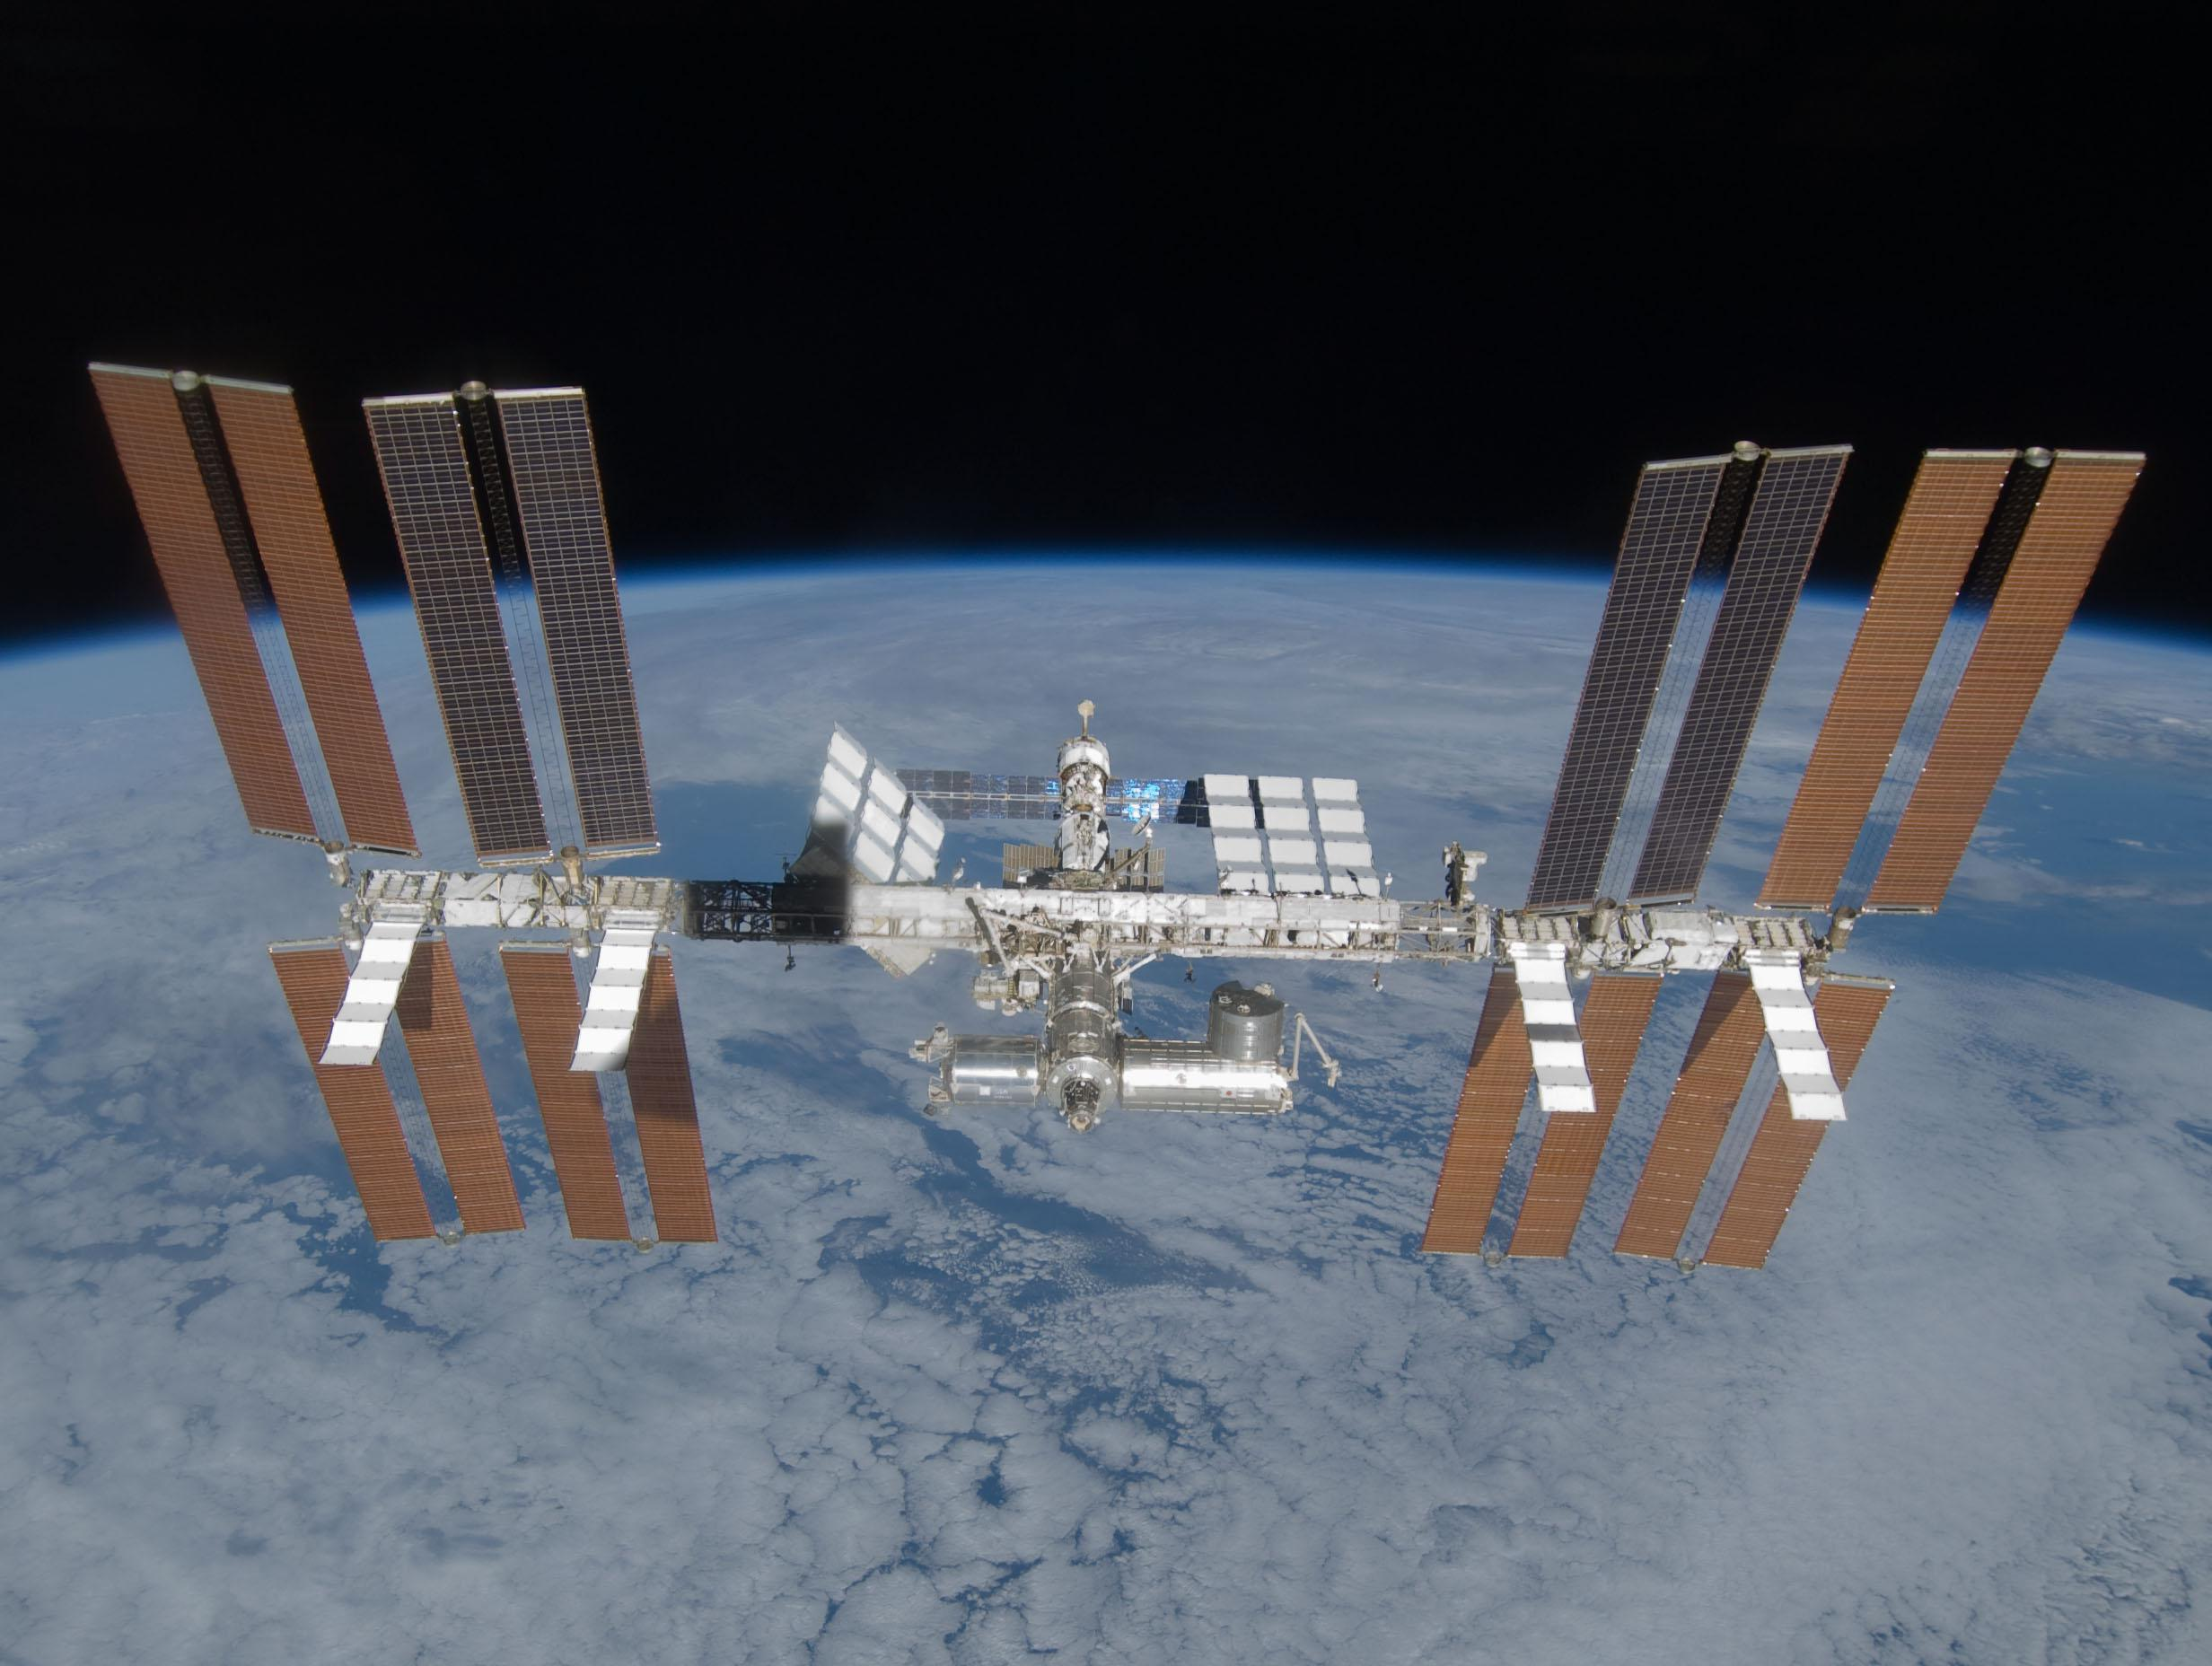 File:ISS March 2009.jpg - Wikipedia